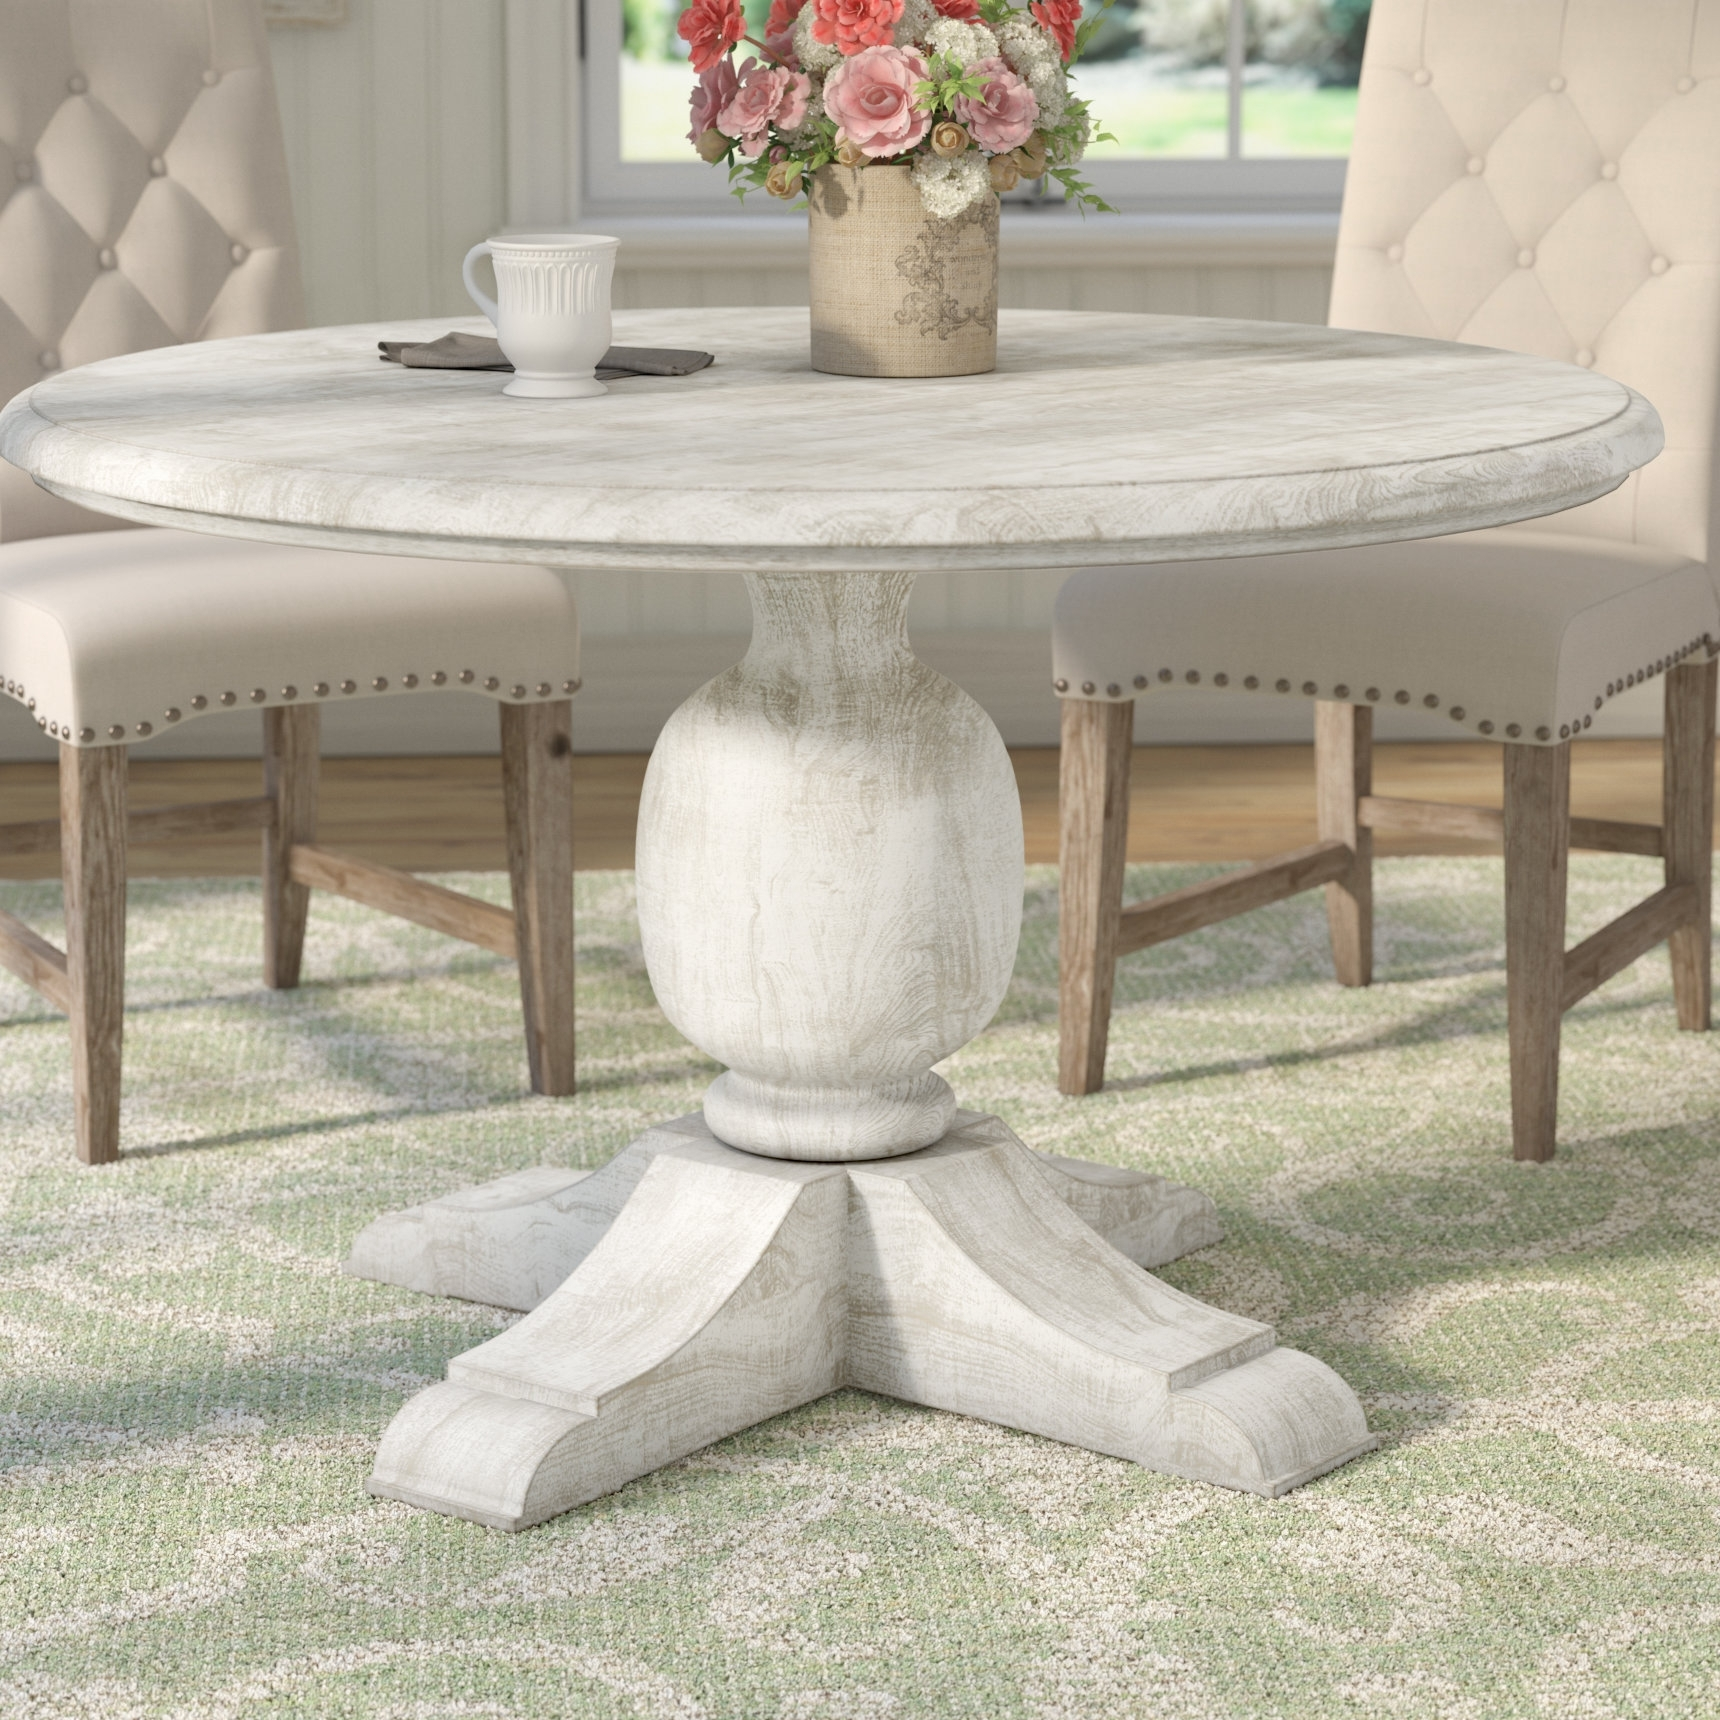 Wayfair Within Current Valencia 60 Inch Round Dining Tables (View 5 of 25)